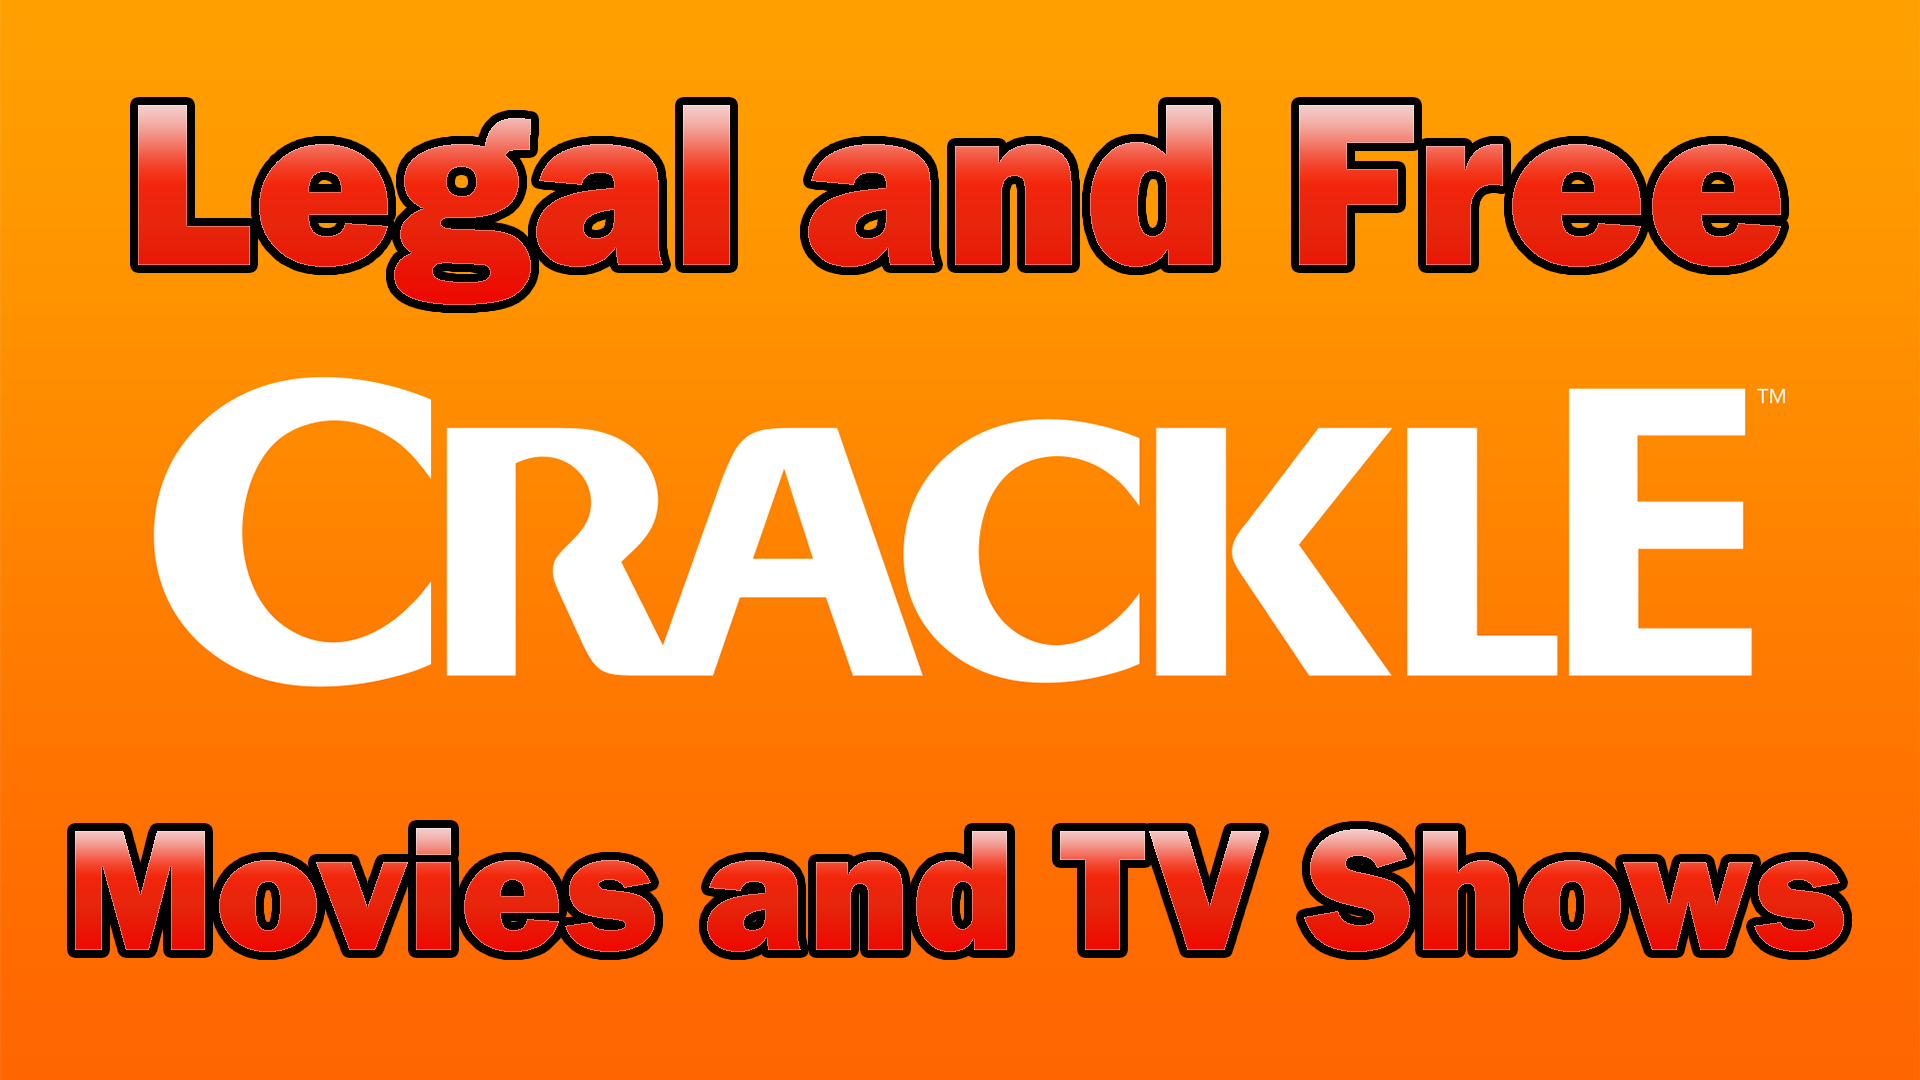 Sony Crackle Stream Free Movies TV Shows